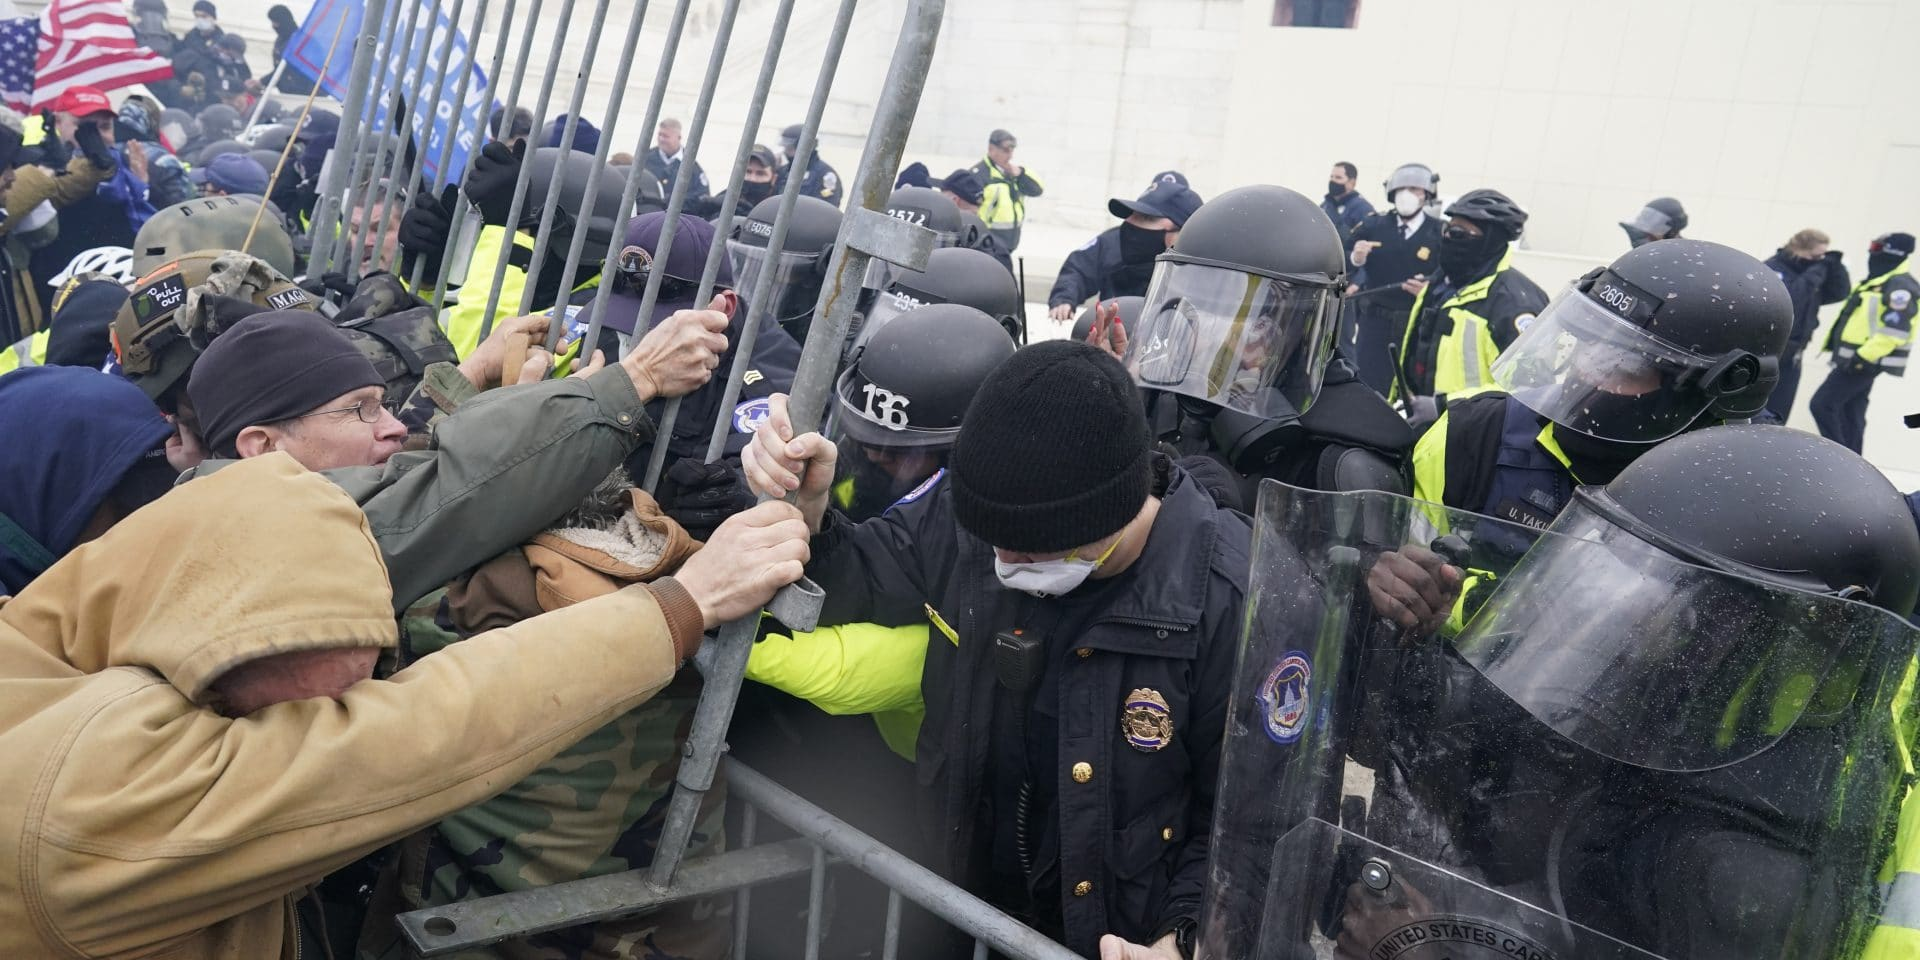 Security Lessons From Capitol's Storming